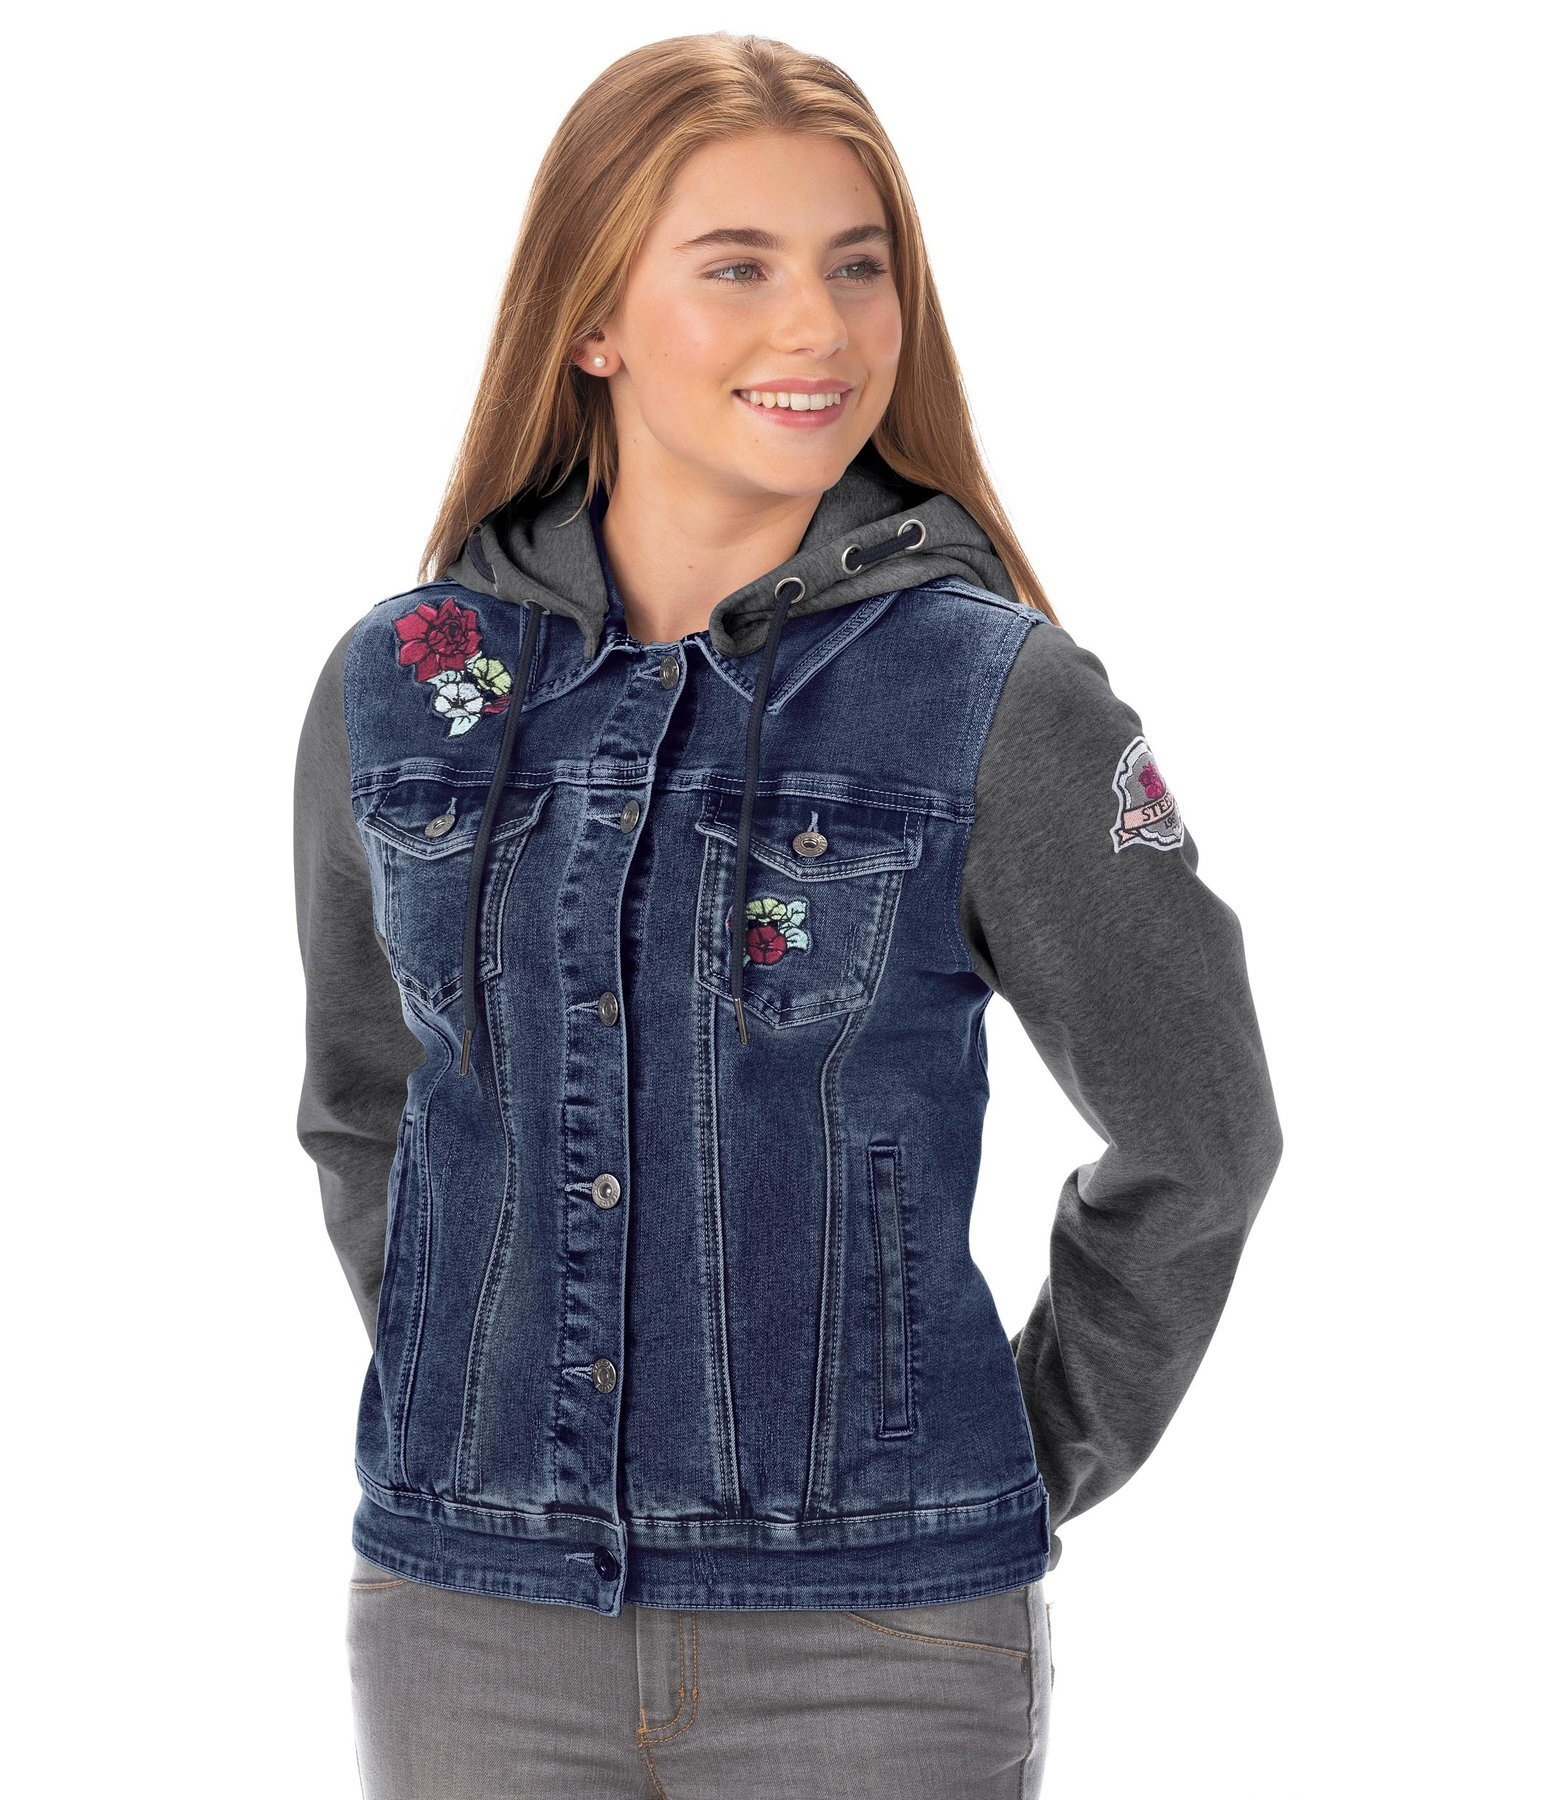 Kinder-Jeans-Sweatjacke Katniss